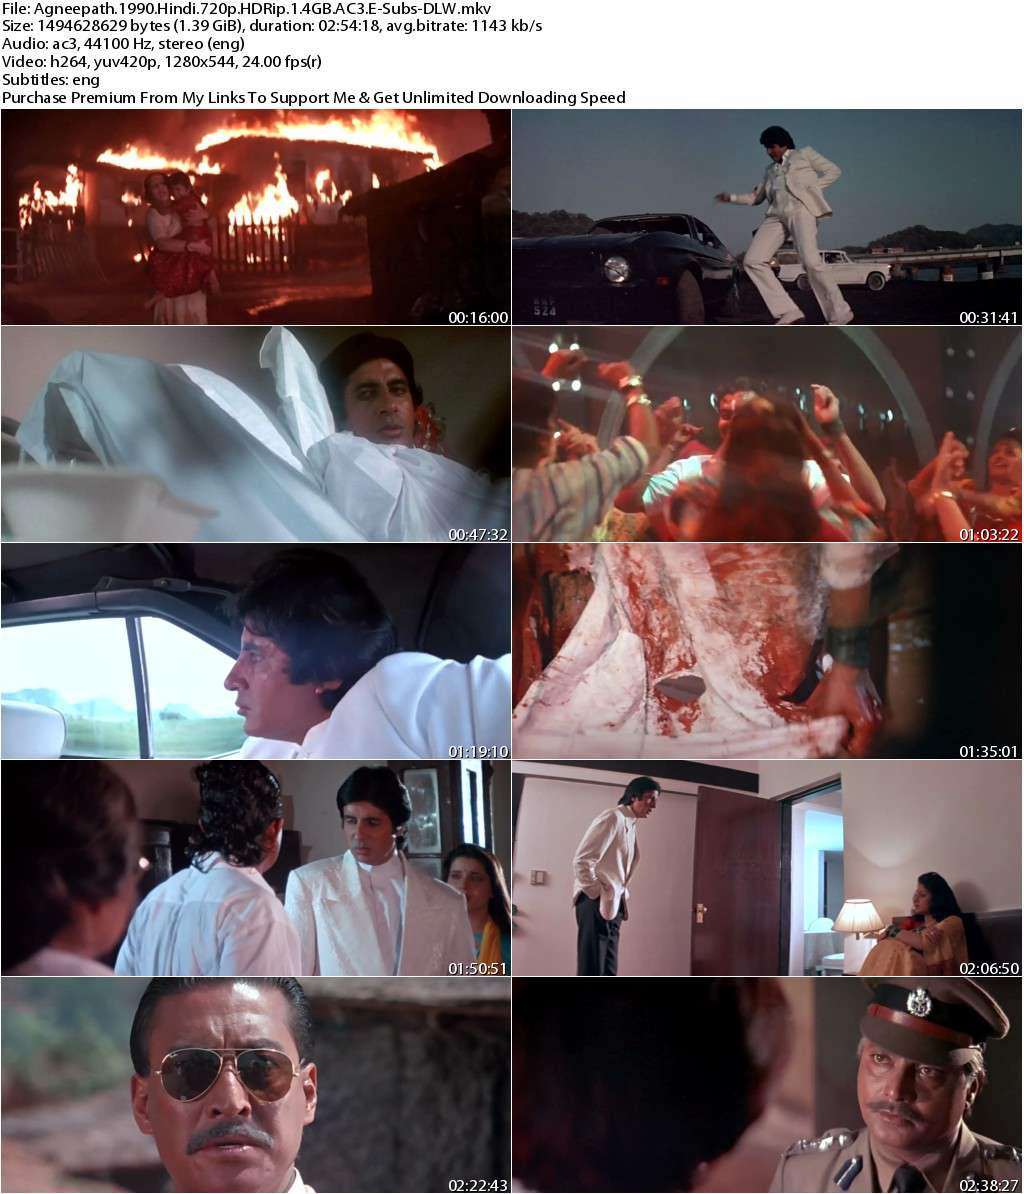 Agneepath (1990) Hindi 720p HDRip 1.4GB AC3 ESubs-DLW